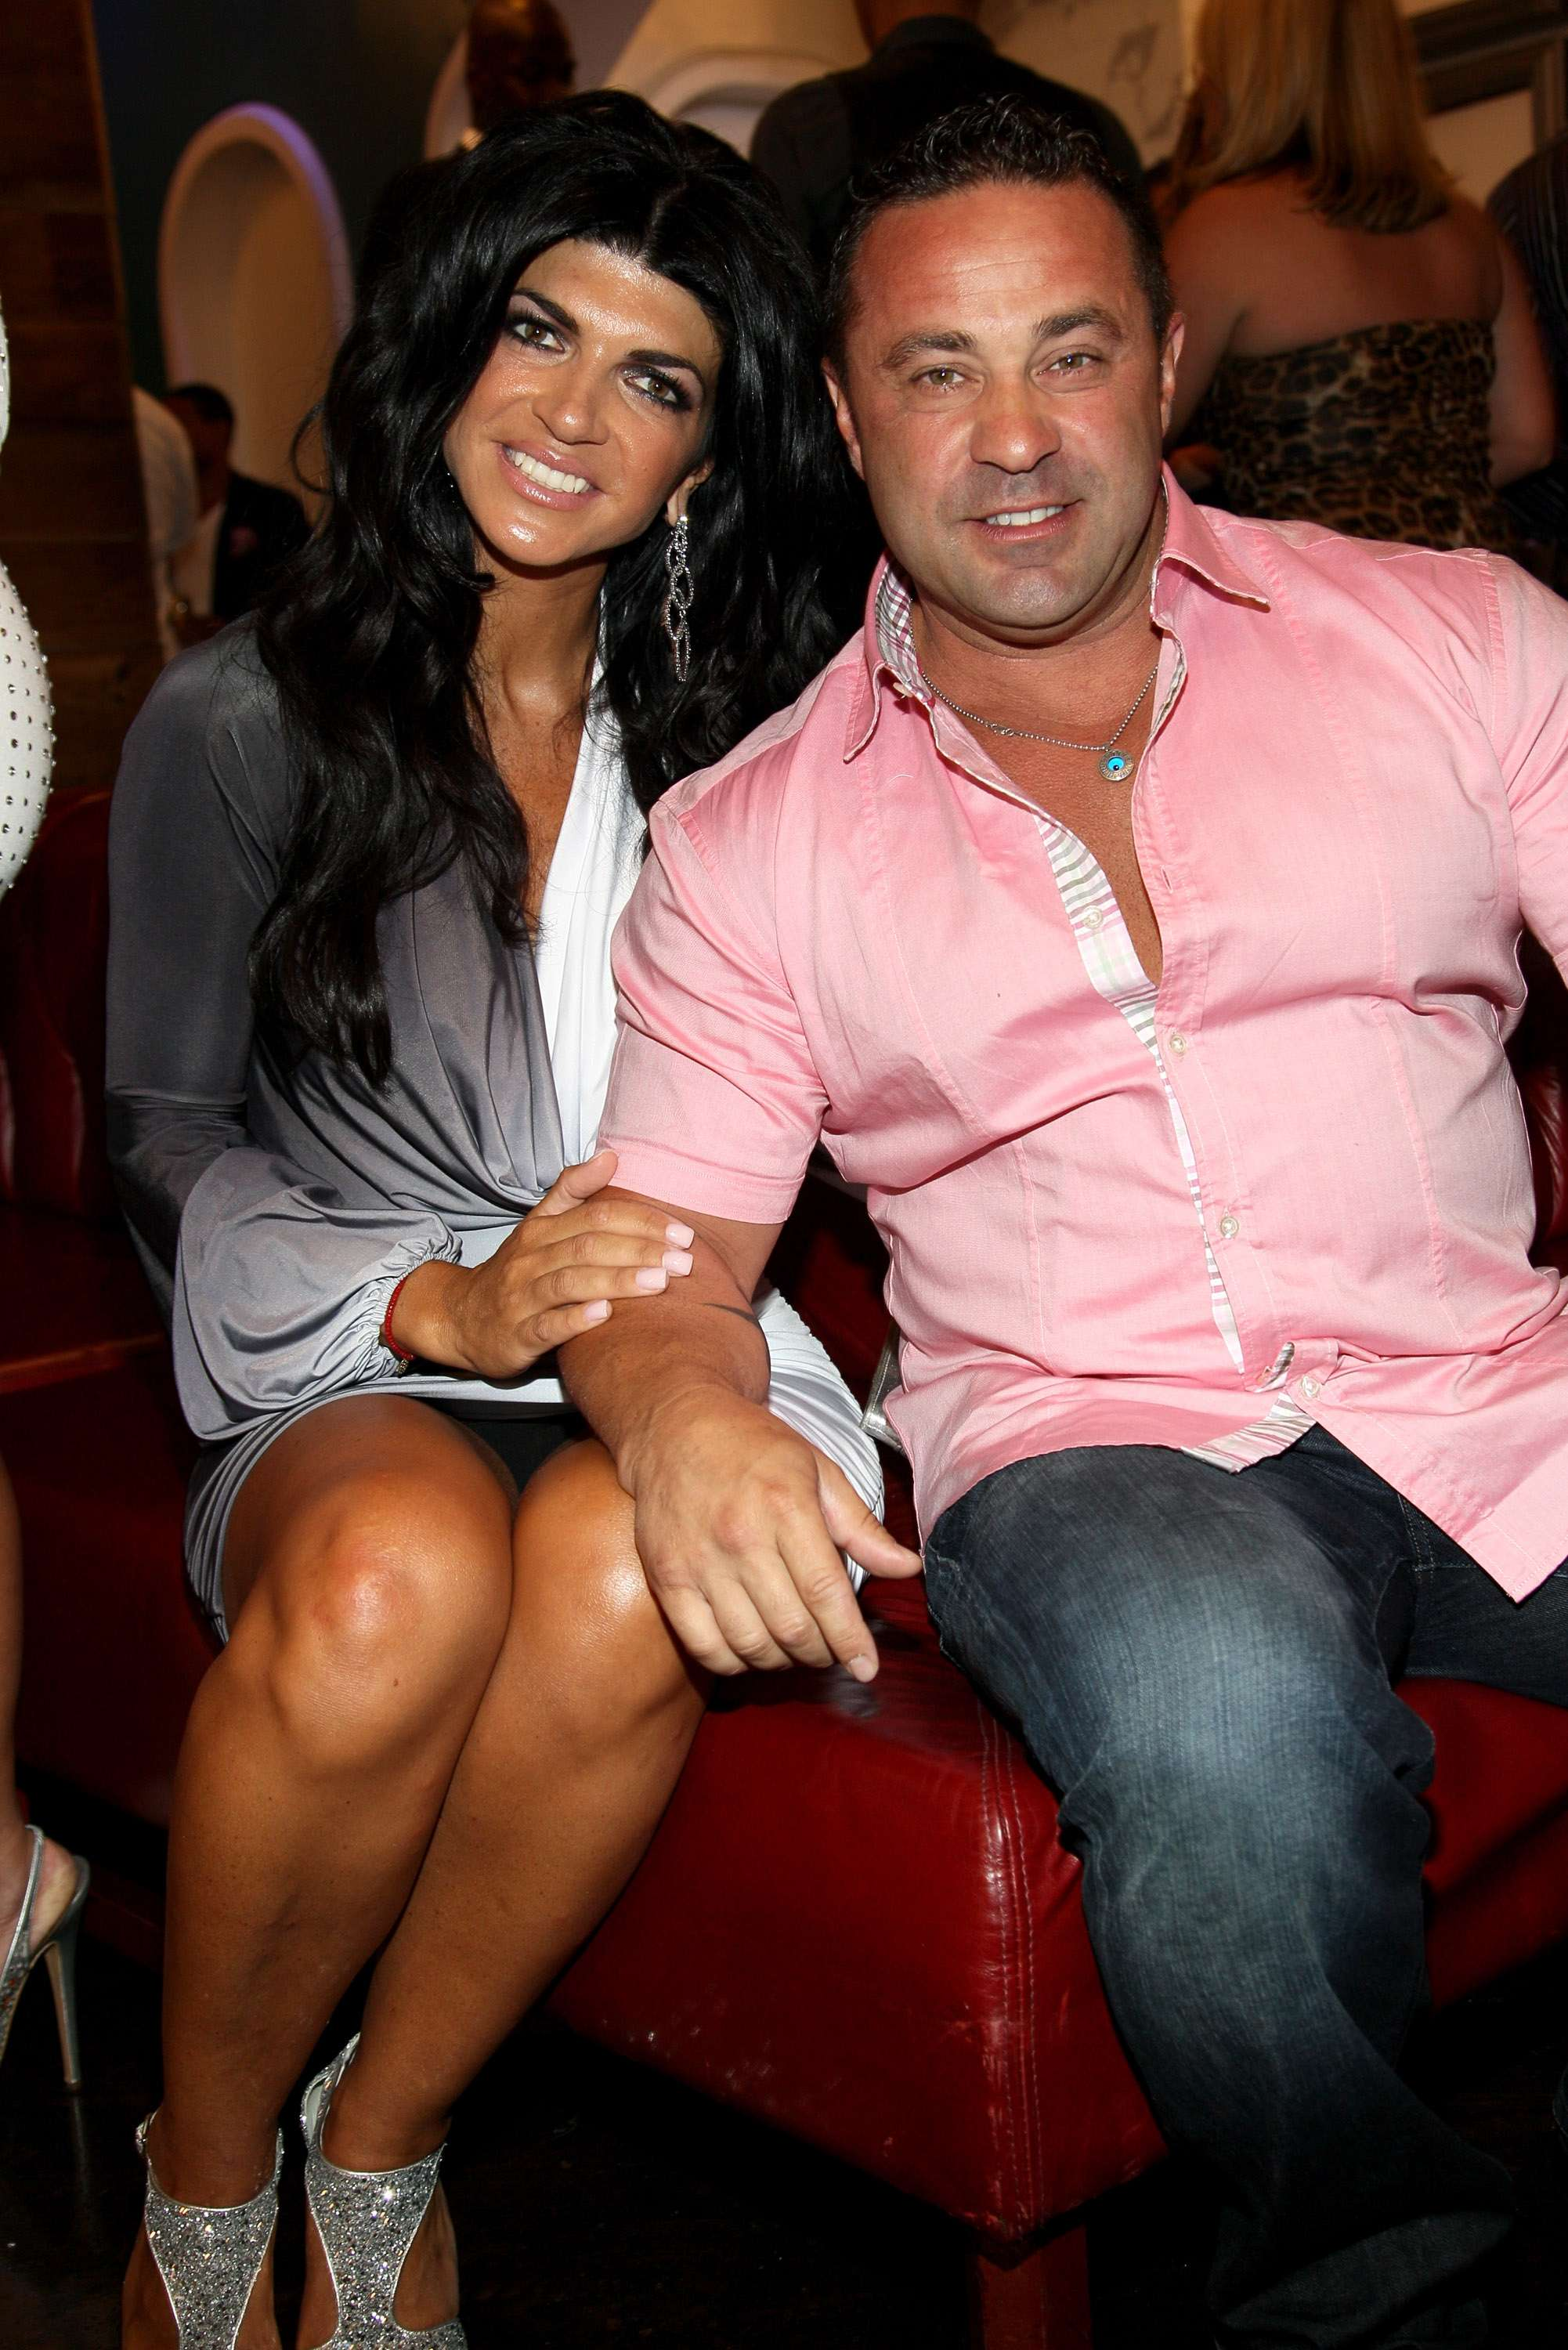 Teres y Joe Giudice Foto: Steve Mack/Getty Images